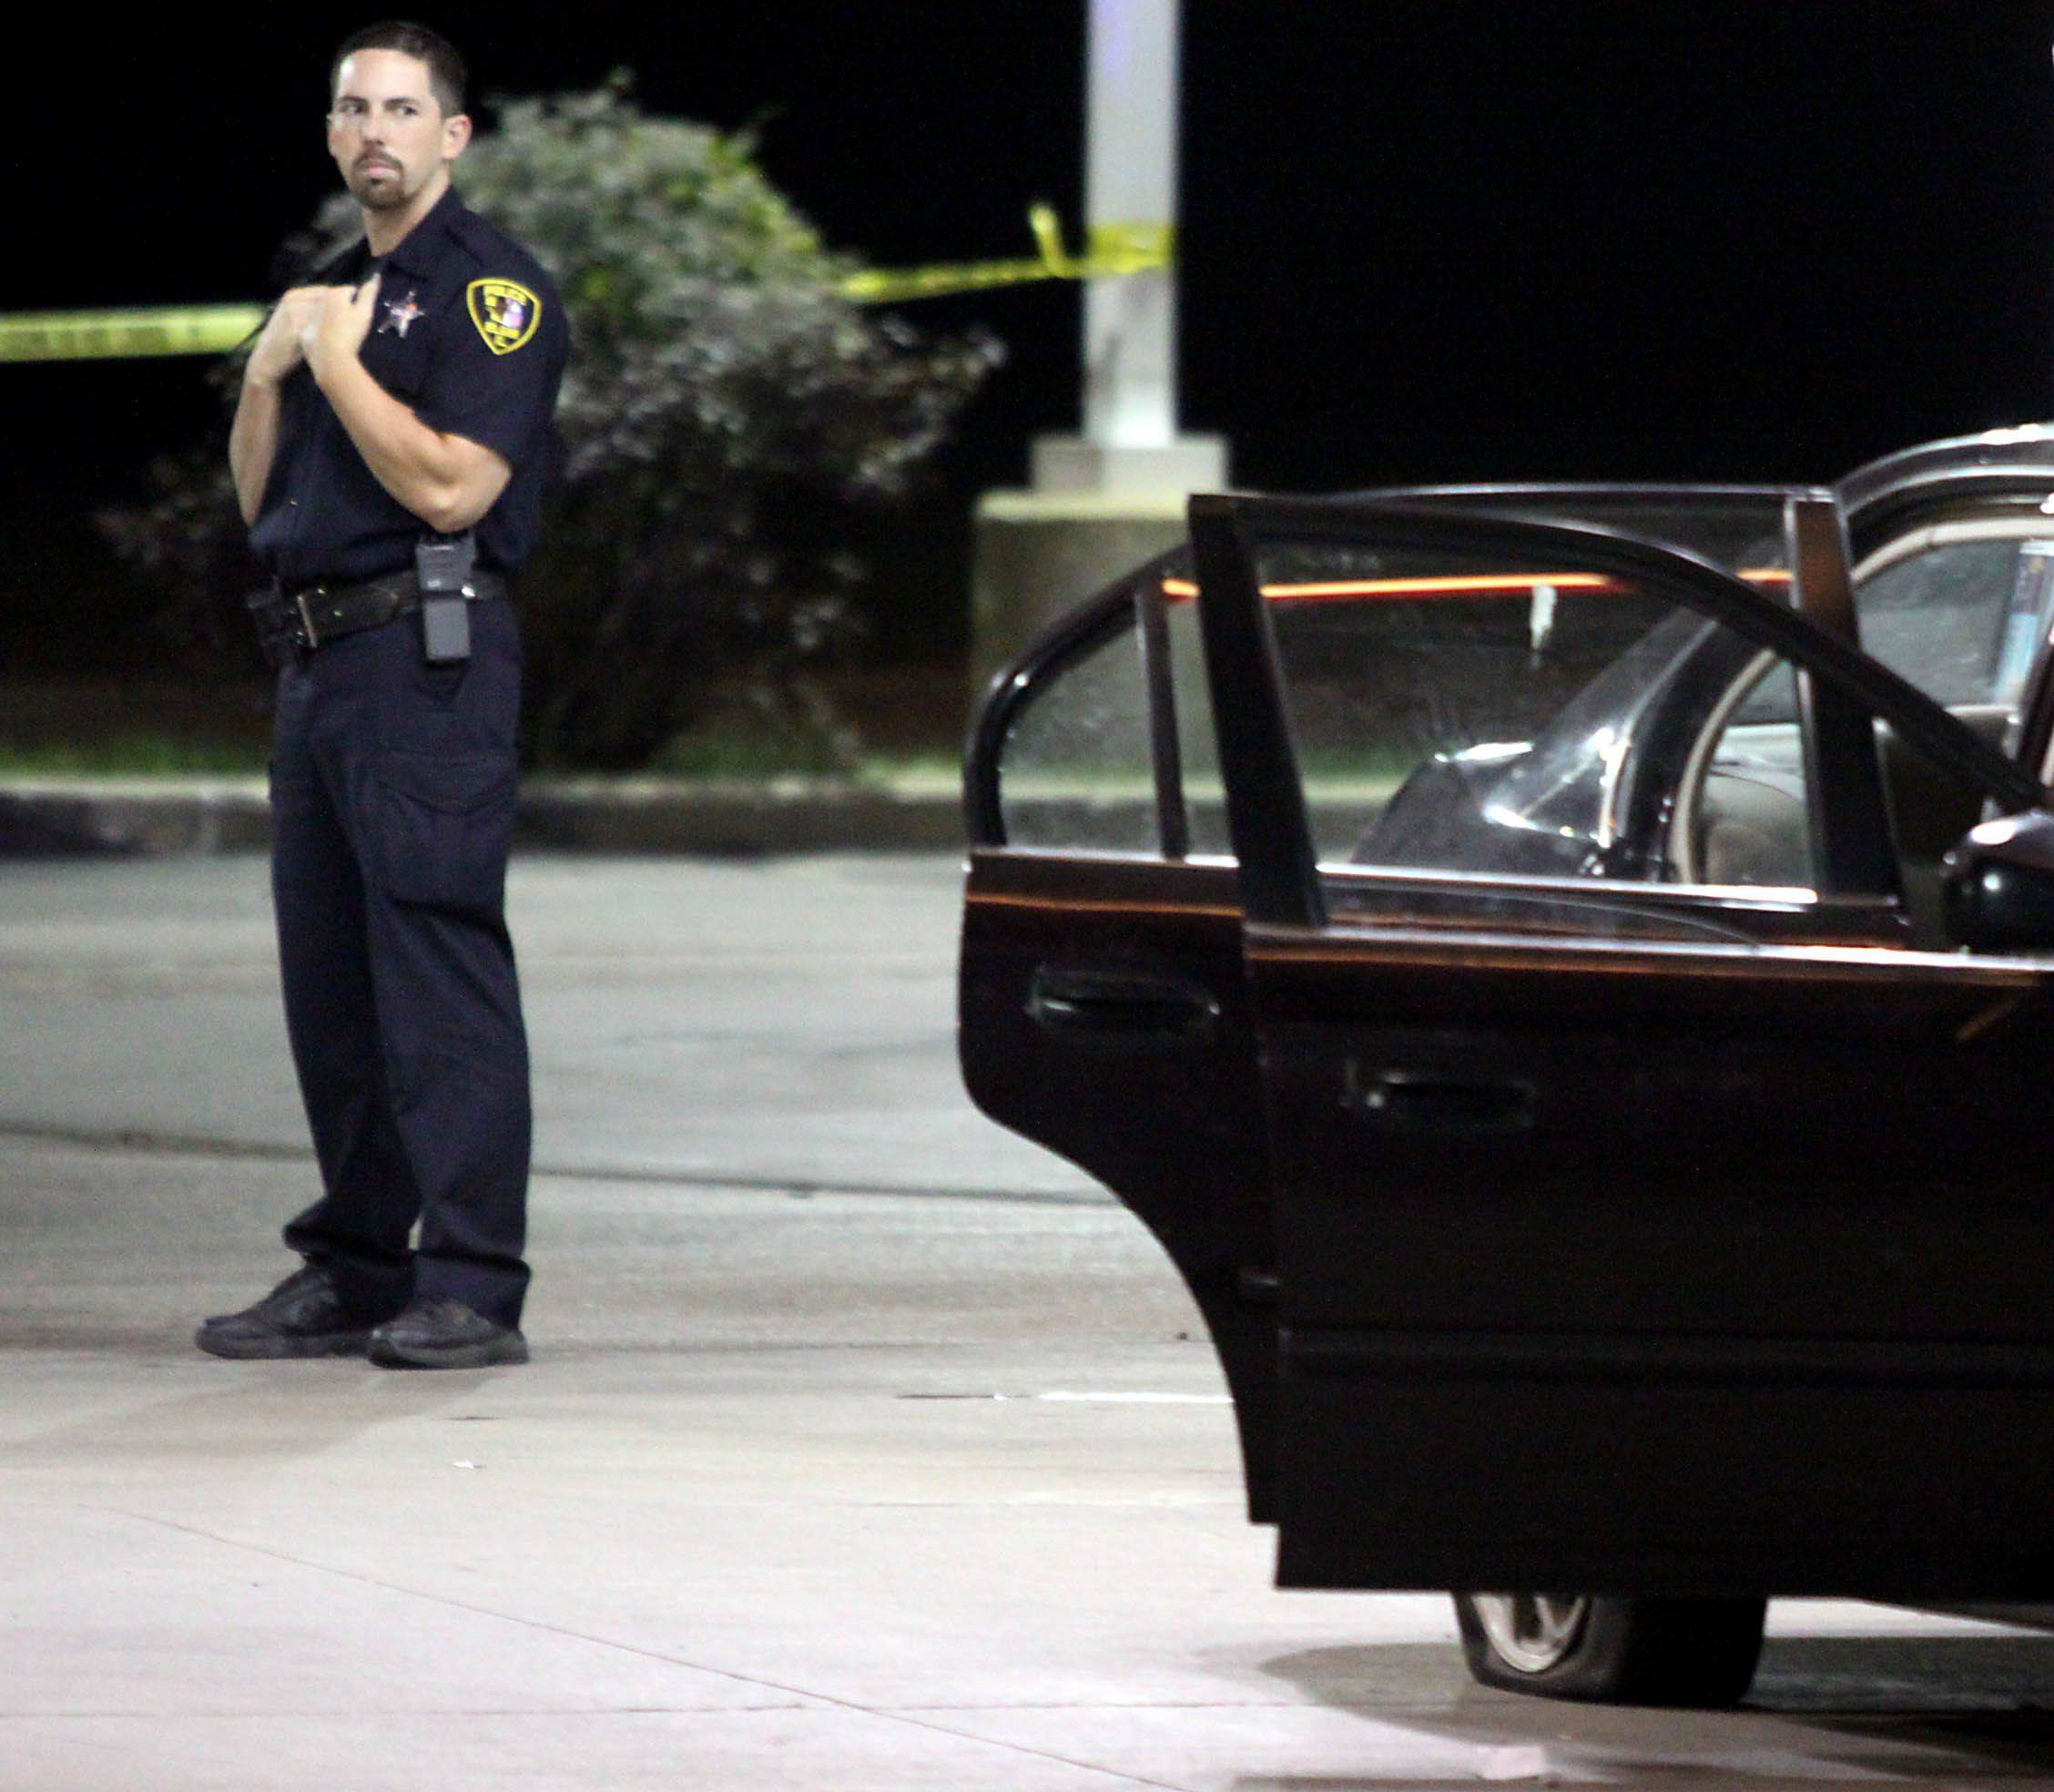 Elgin police investigate after a child with a gunshot wound was transported from a gas station along Dundee Avenue on Friday night. Here, an Elgin police officer surveys the scene at the gas station. The boy later died.